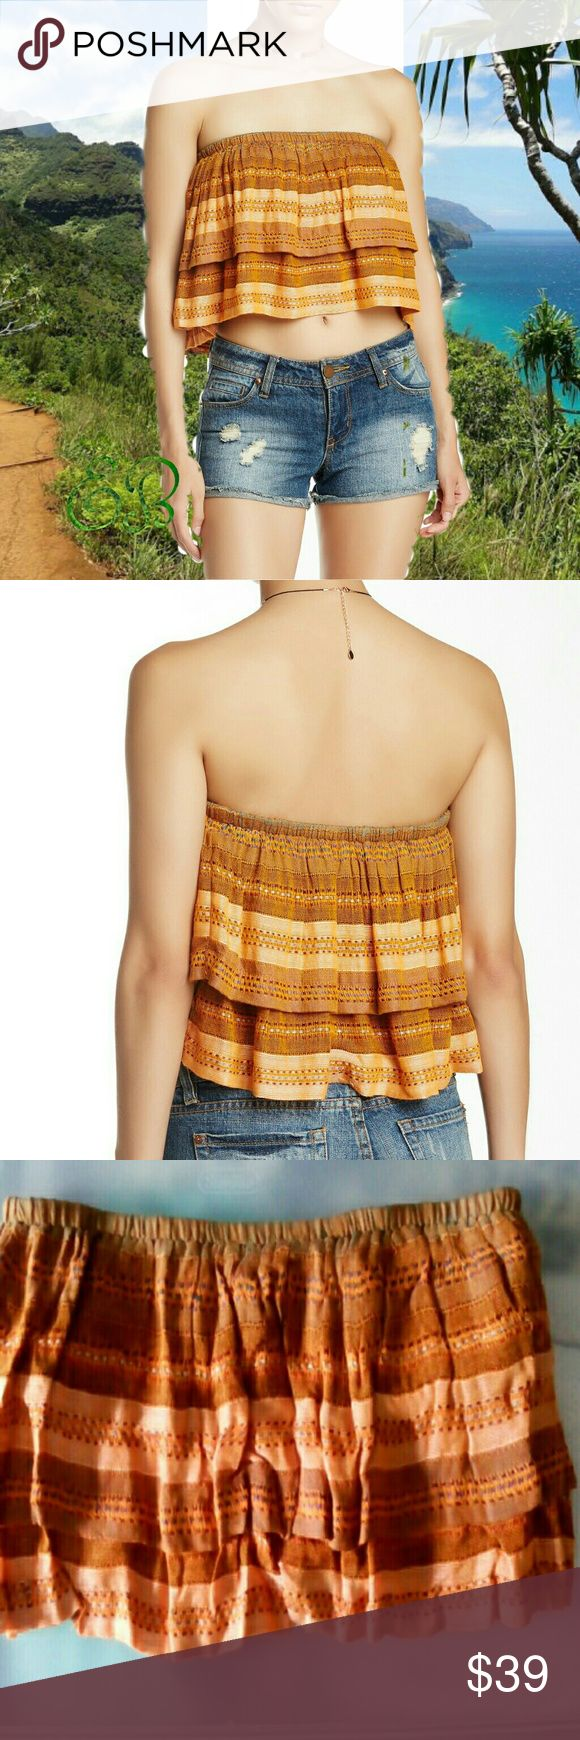 "FREE PEOPLE Indian Summer Orange Bandeau Top Free People Indian Summer Bandeau Tube top  Condition:  NWT  Type: Top Style: Bandeau Size: L Color: Orange Brand: Free People  Features: Tiers Measurements: 33"" Chest 10"" Length  Materials: 100% Rayon Lining 94% Cotton 6% Spandex Country of Manufacturer: India  Closet Note: Tube top with a tiered construction. Bandeau neck. No straps. Top is lined  DD 25.5.17 Free People Tops"